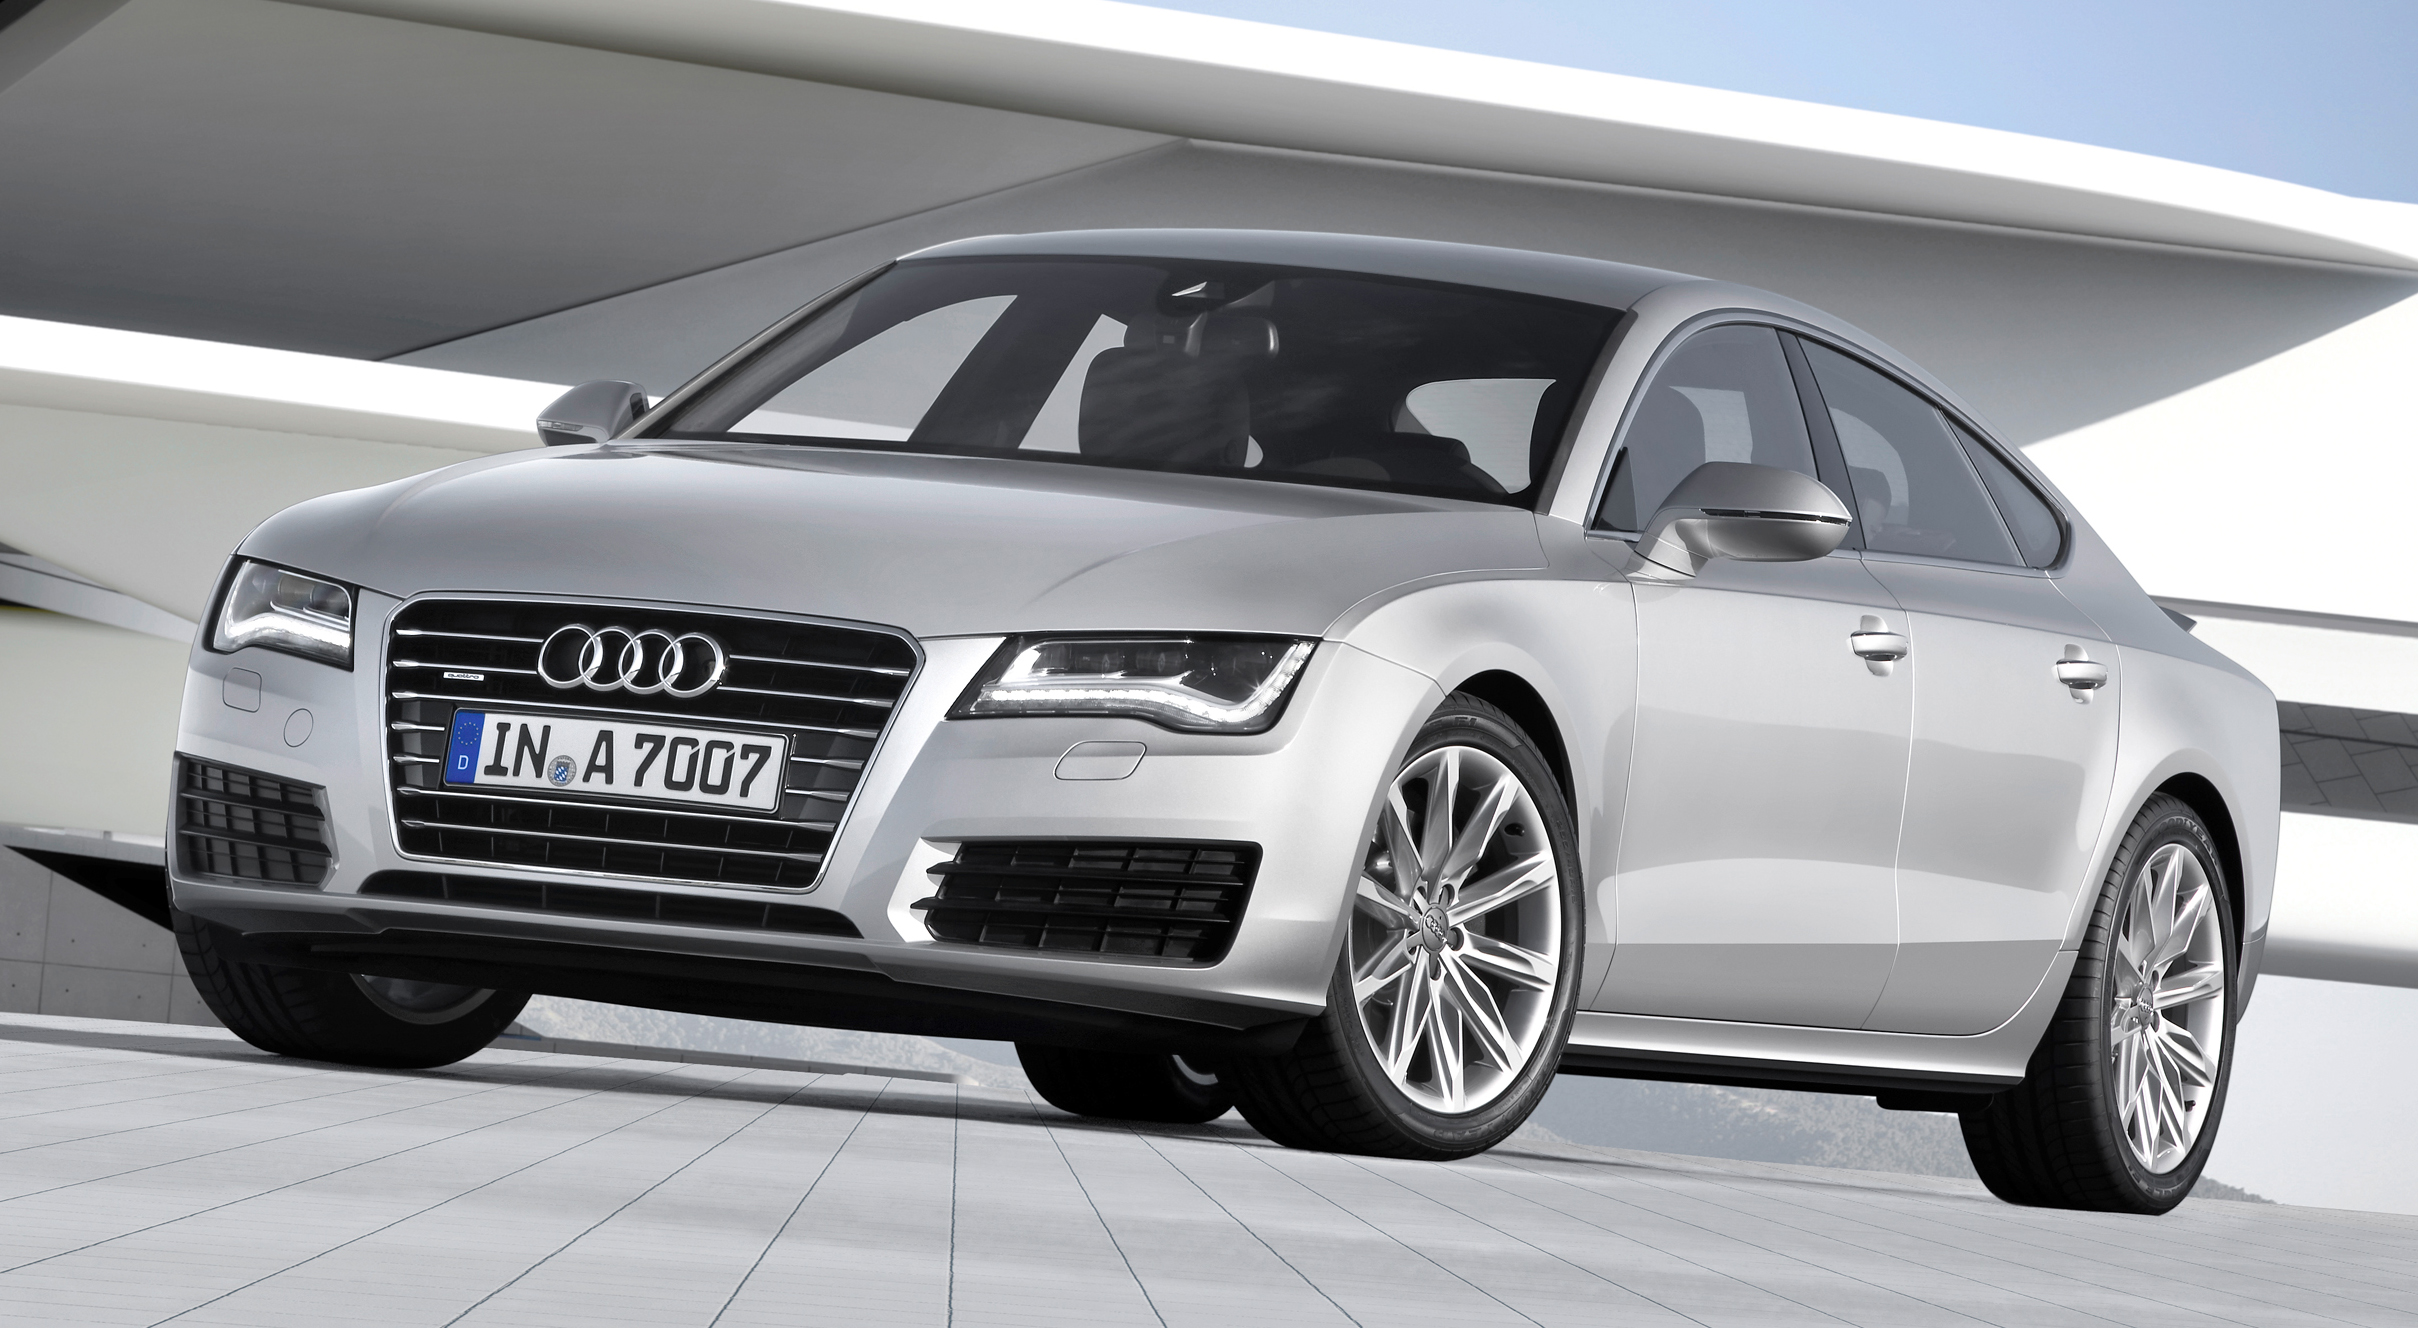 audi a7 3 0 tfsi quattro now in malaysia rm599k. Black Bedroom Furniture Sets. Home Design Ideas